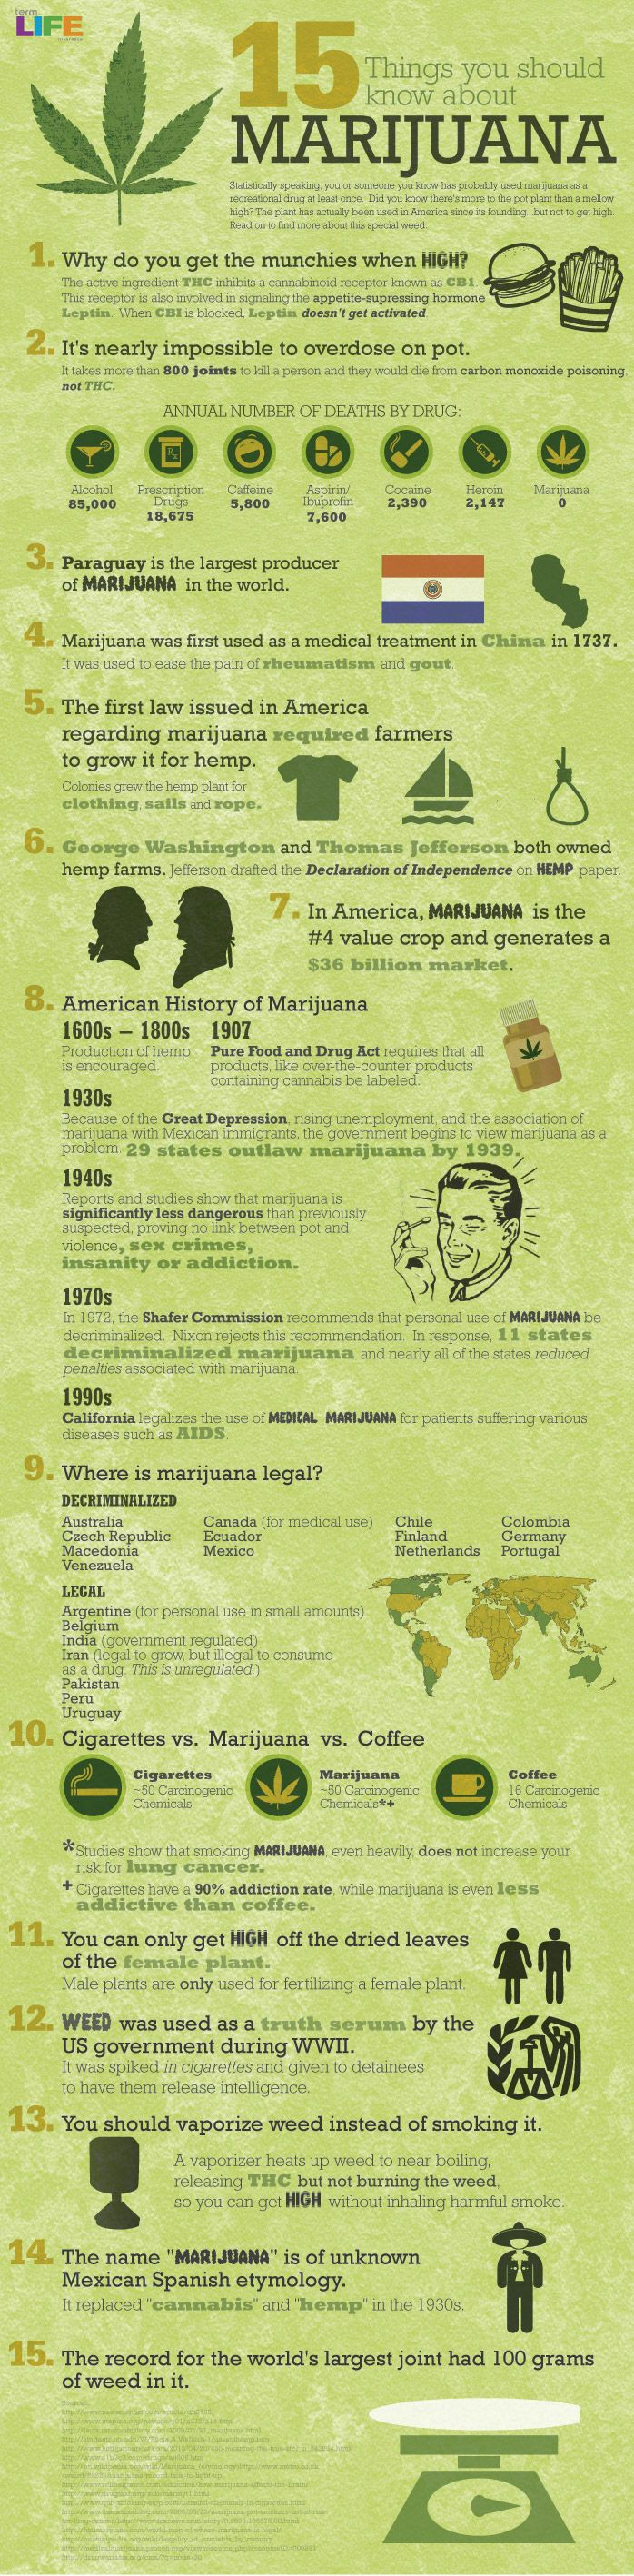 15 Things You Should Know About Marijuana [INFOGRAPHIC]: